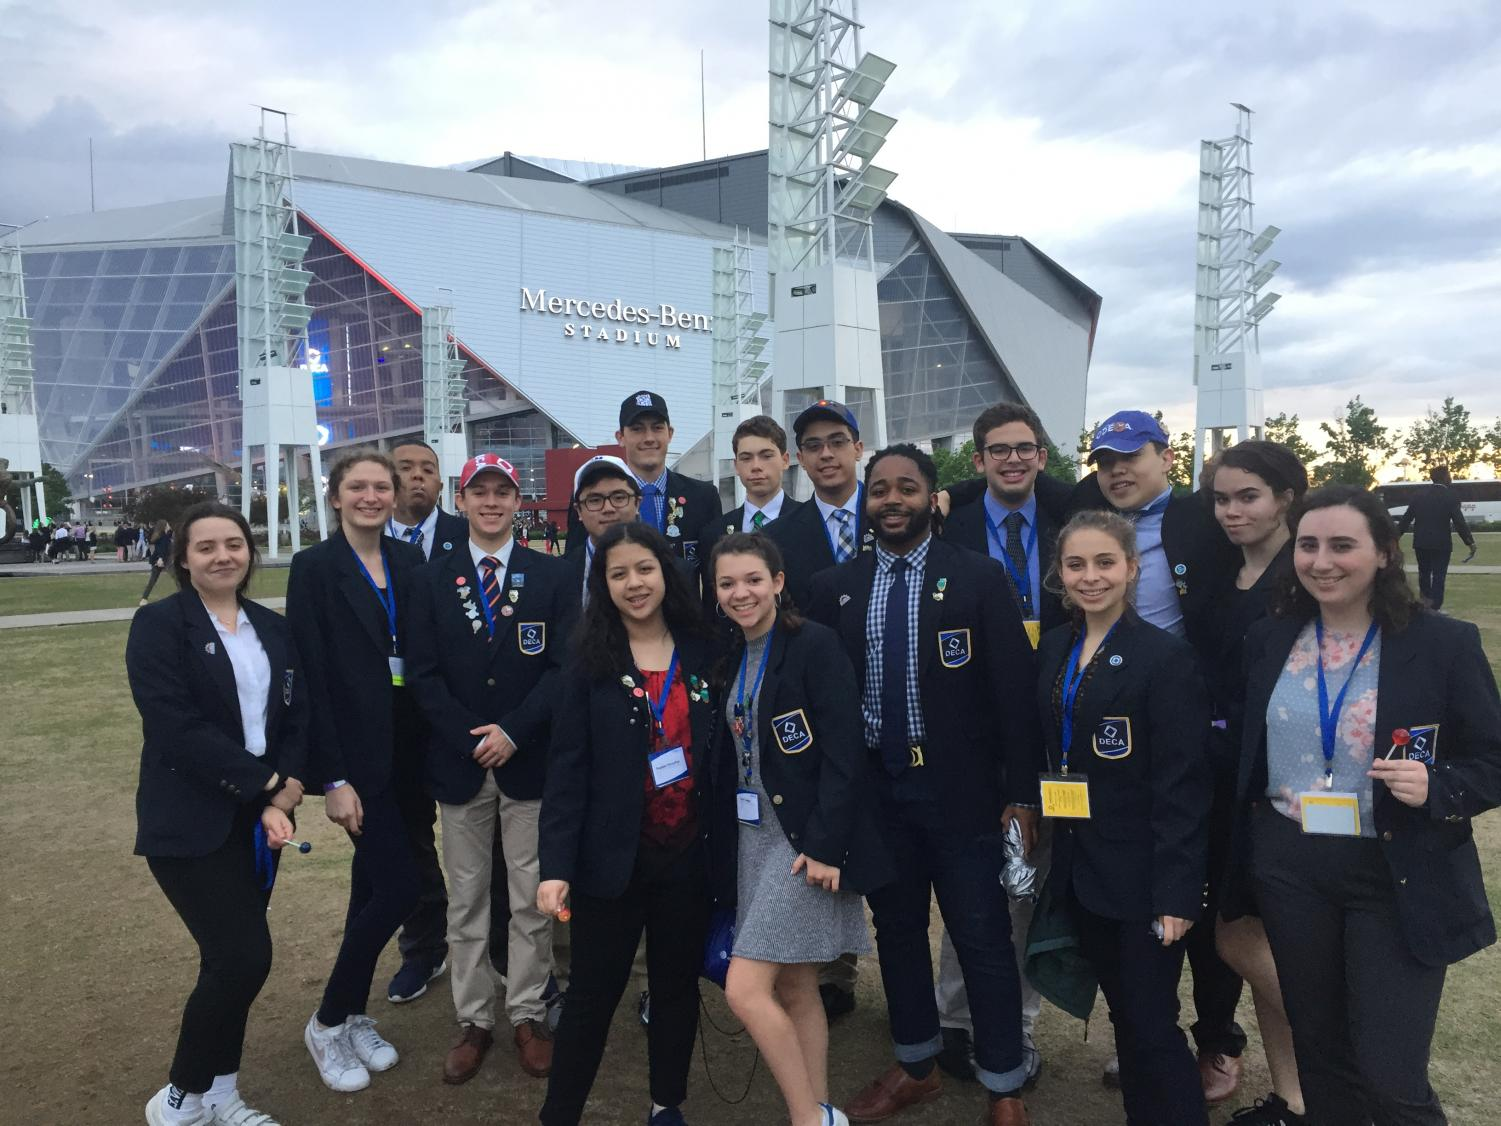 The ETHS DECA team had a terrific showing at nationals in Atlanta, GA.